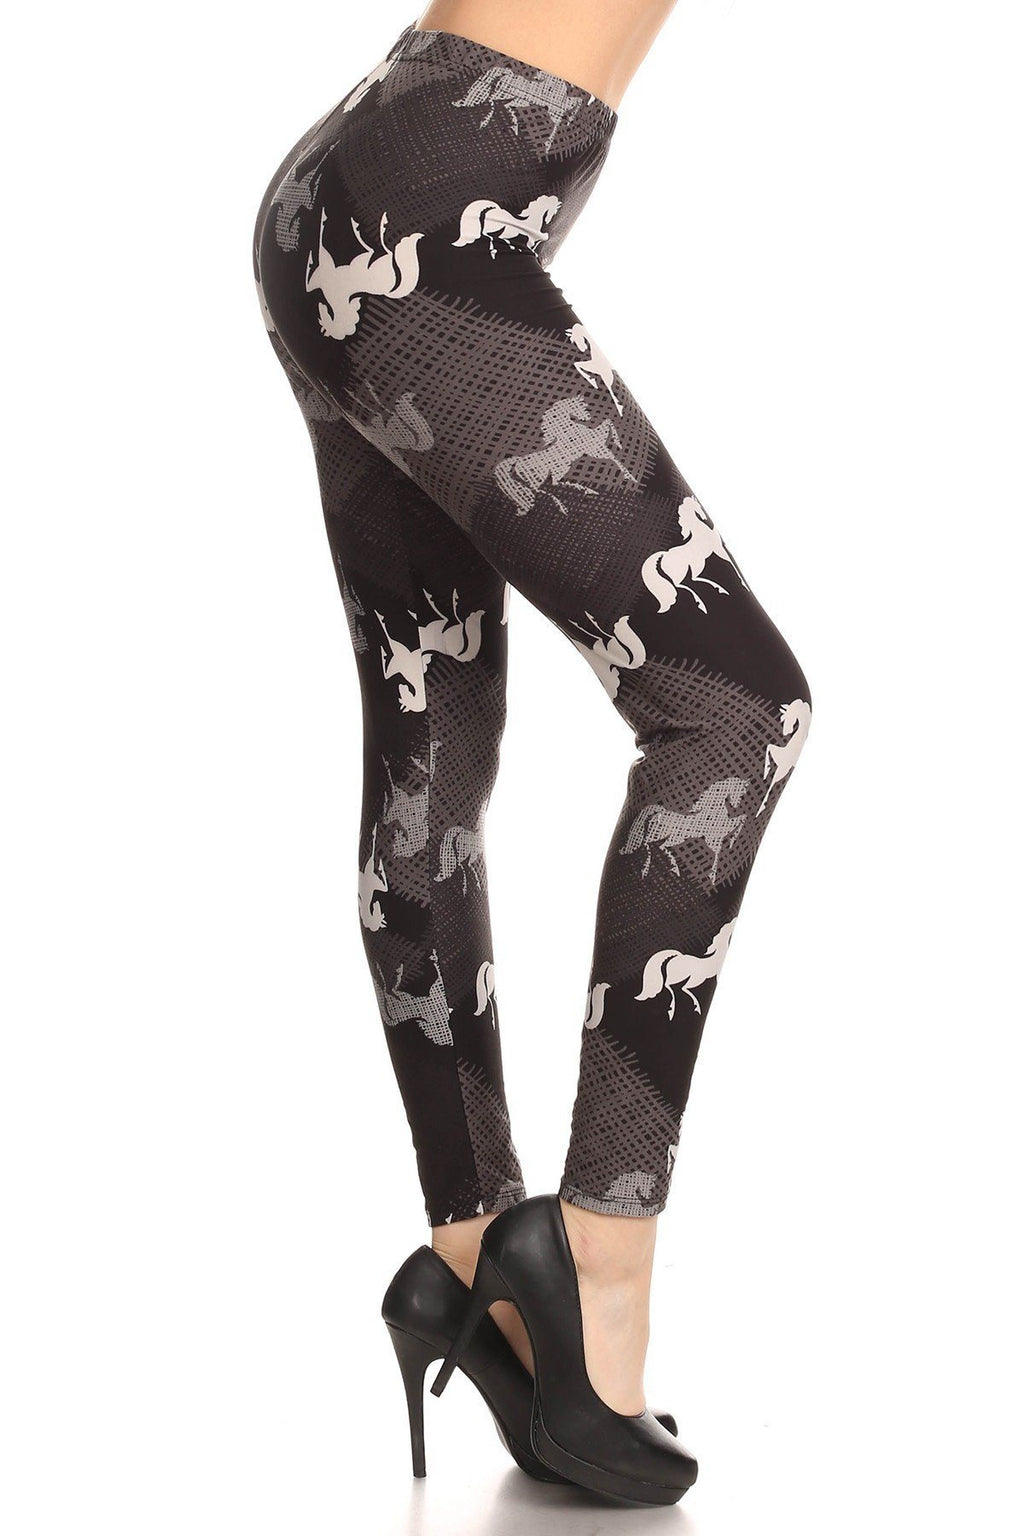 Women's Horse Printed Leggings Black: OS and Plus Leggings MomMe and More